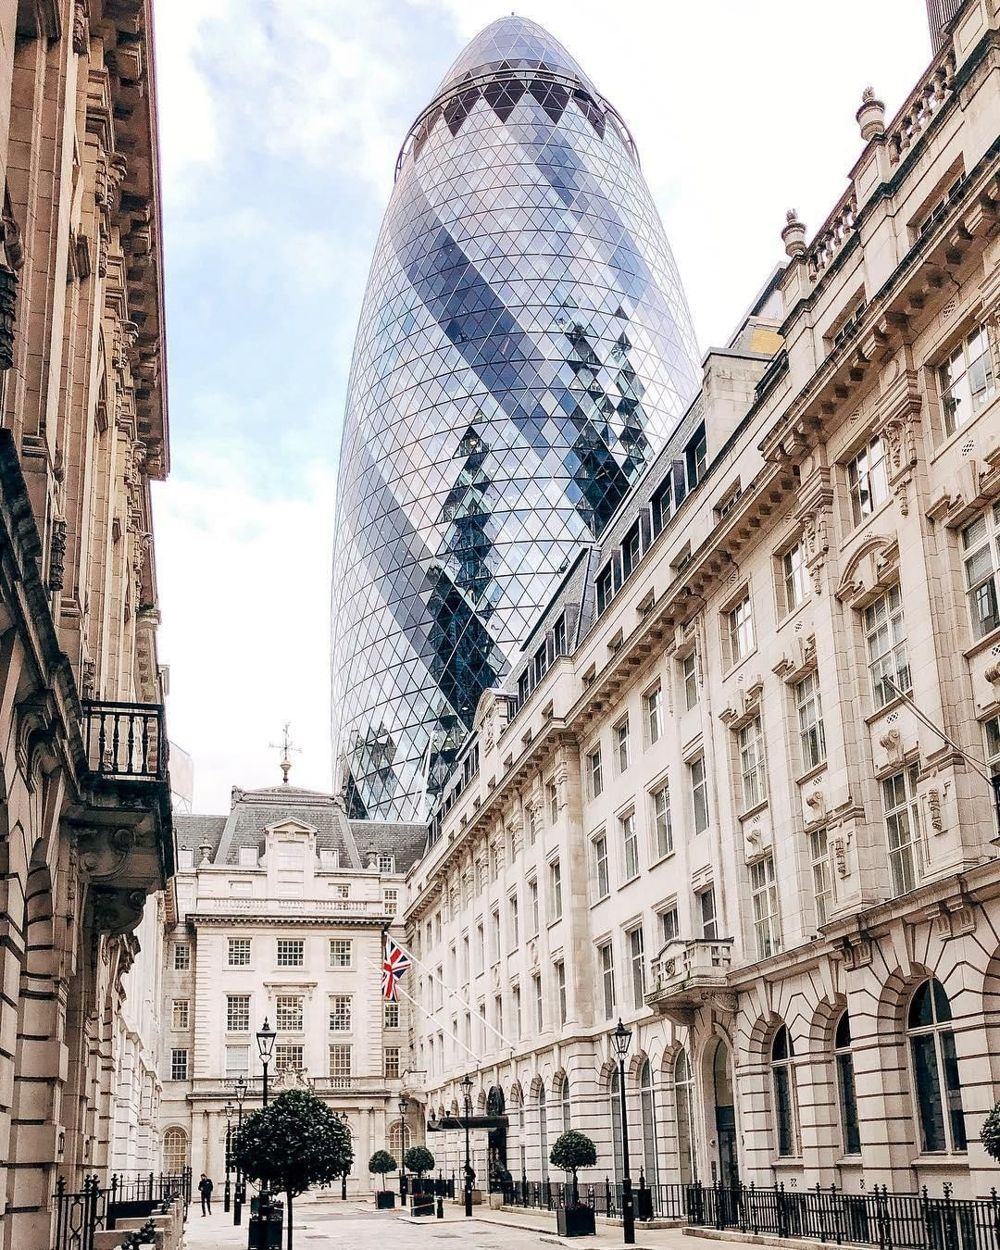 View of The Gherkin in London